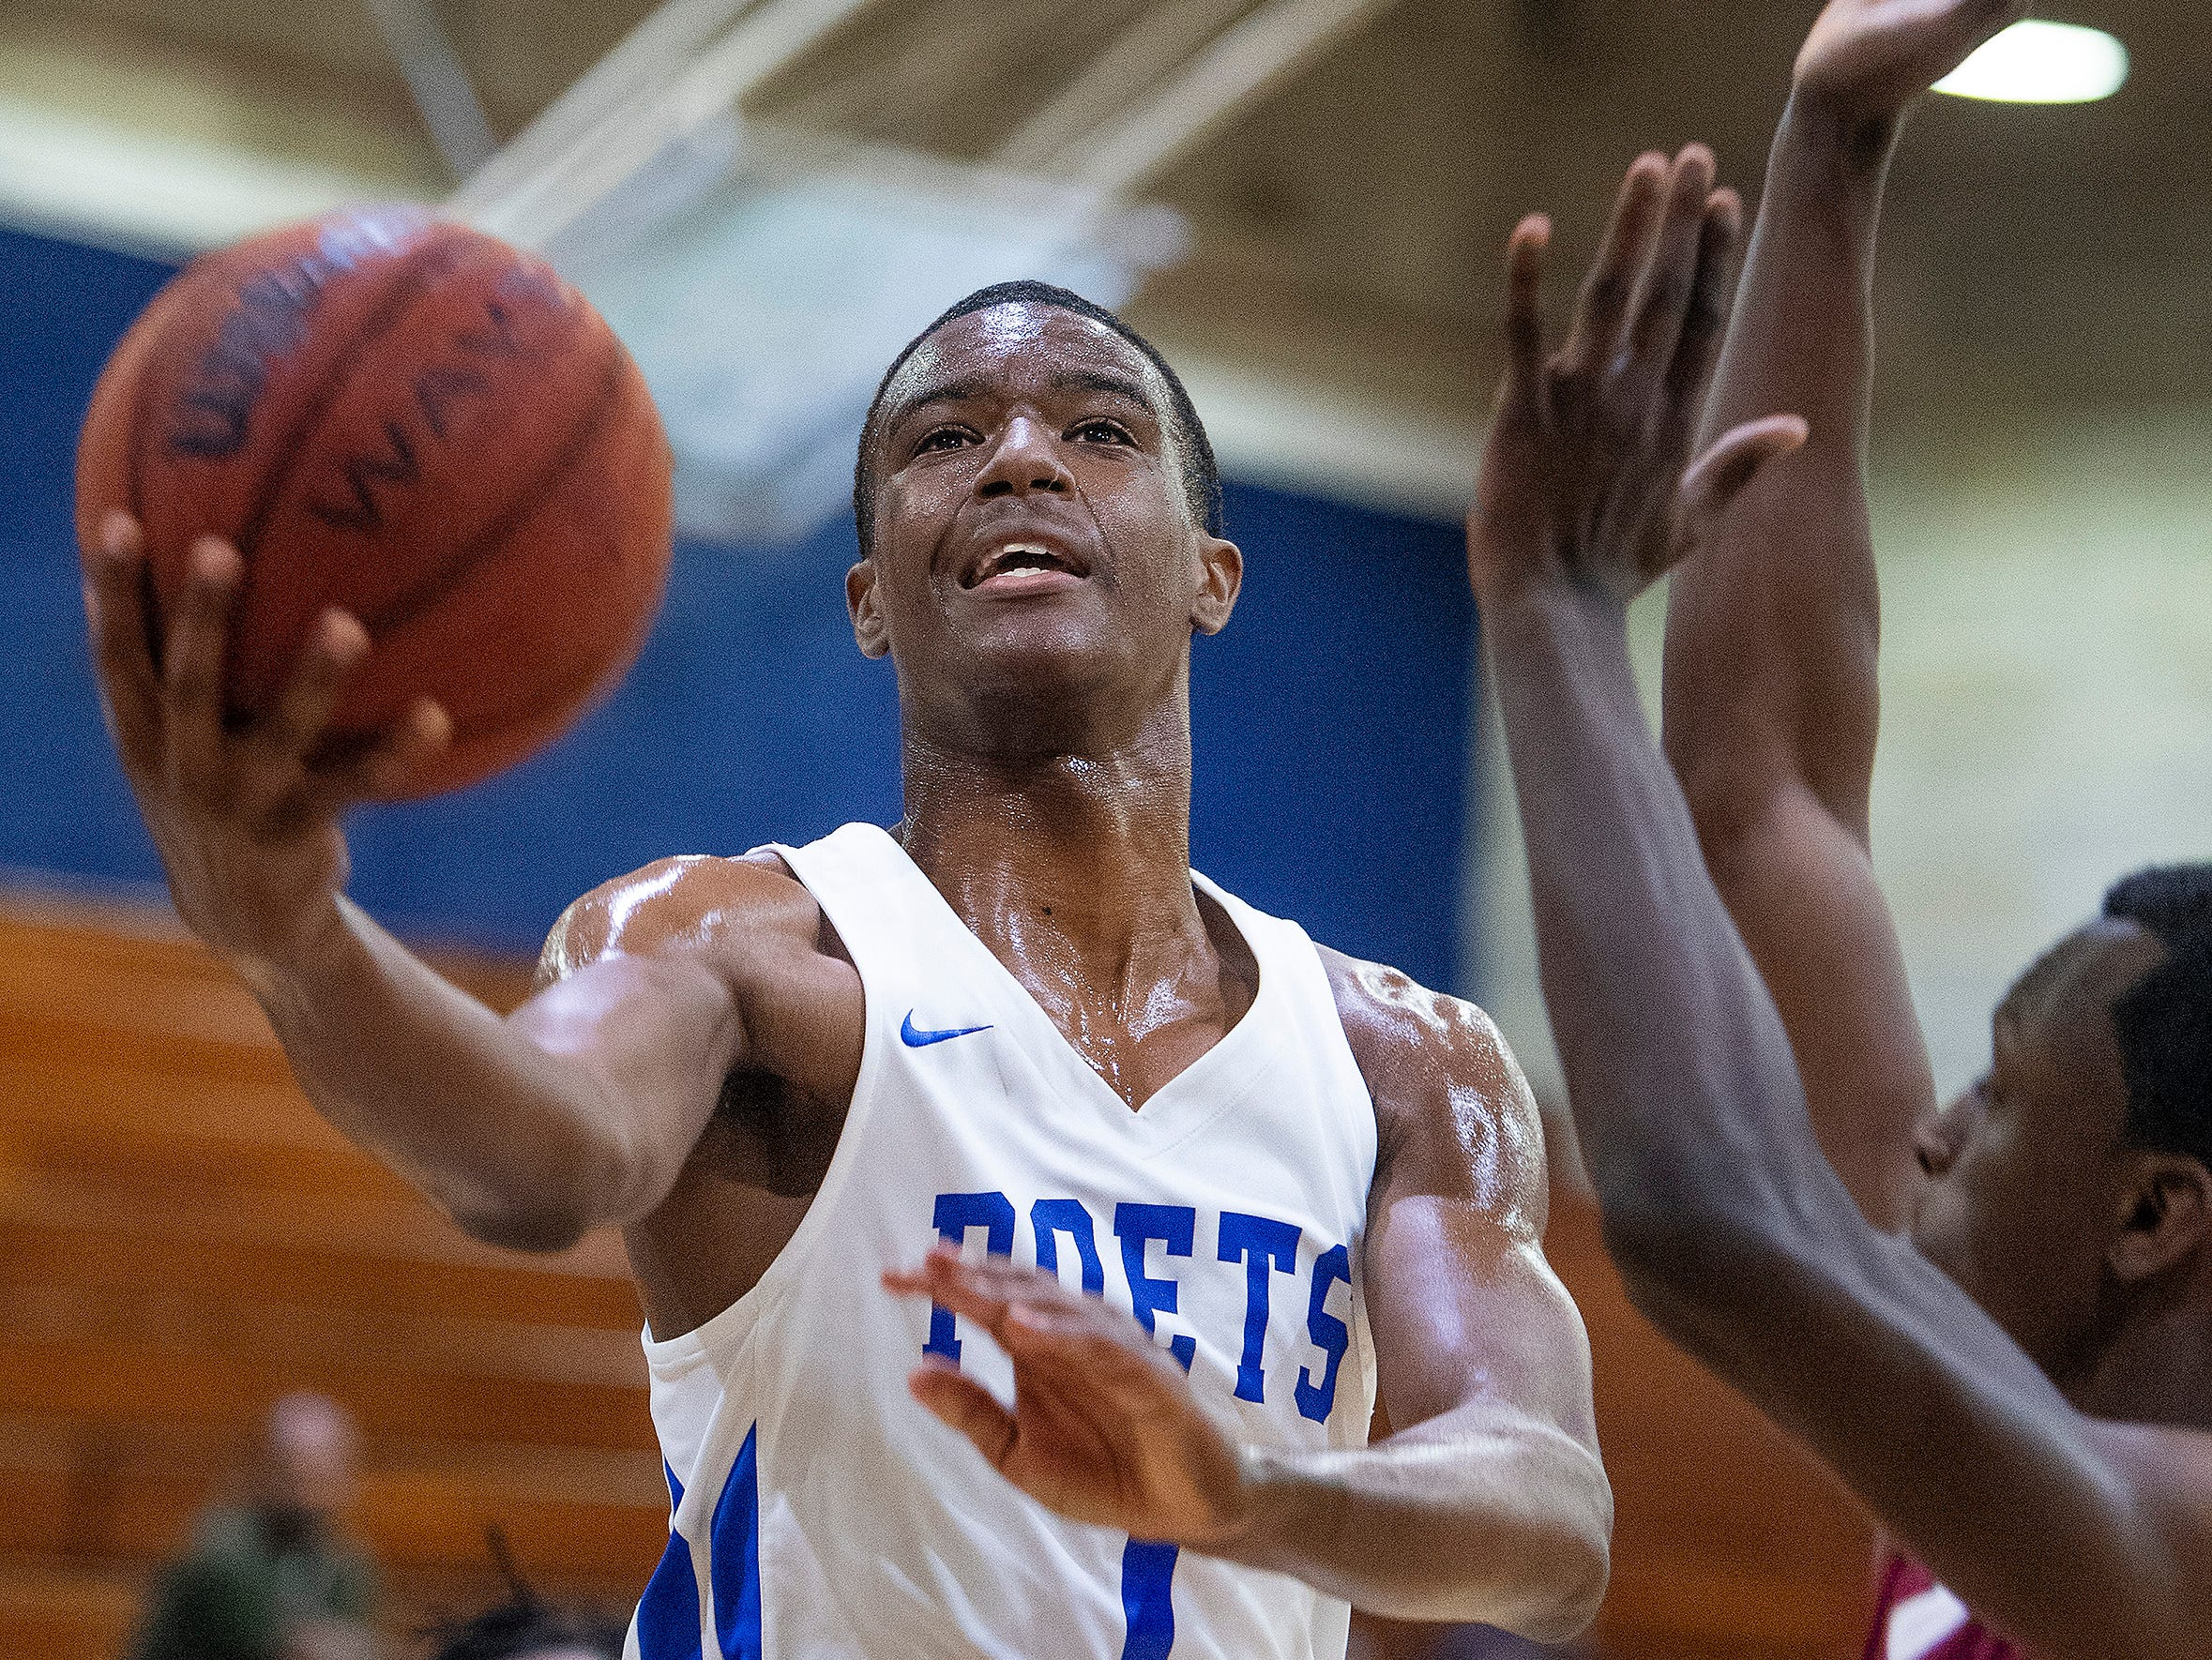 Lanier's Kendon Knight (1) against Northview at the Lanier campus in Montgomery, Ala., on Tuesday February 12, 2019.